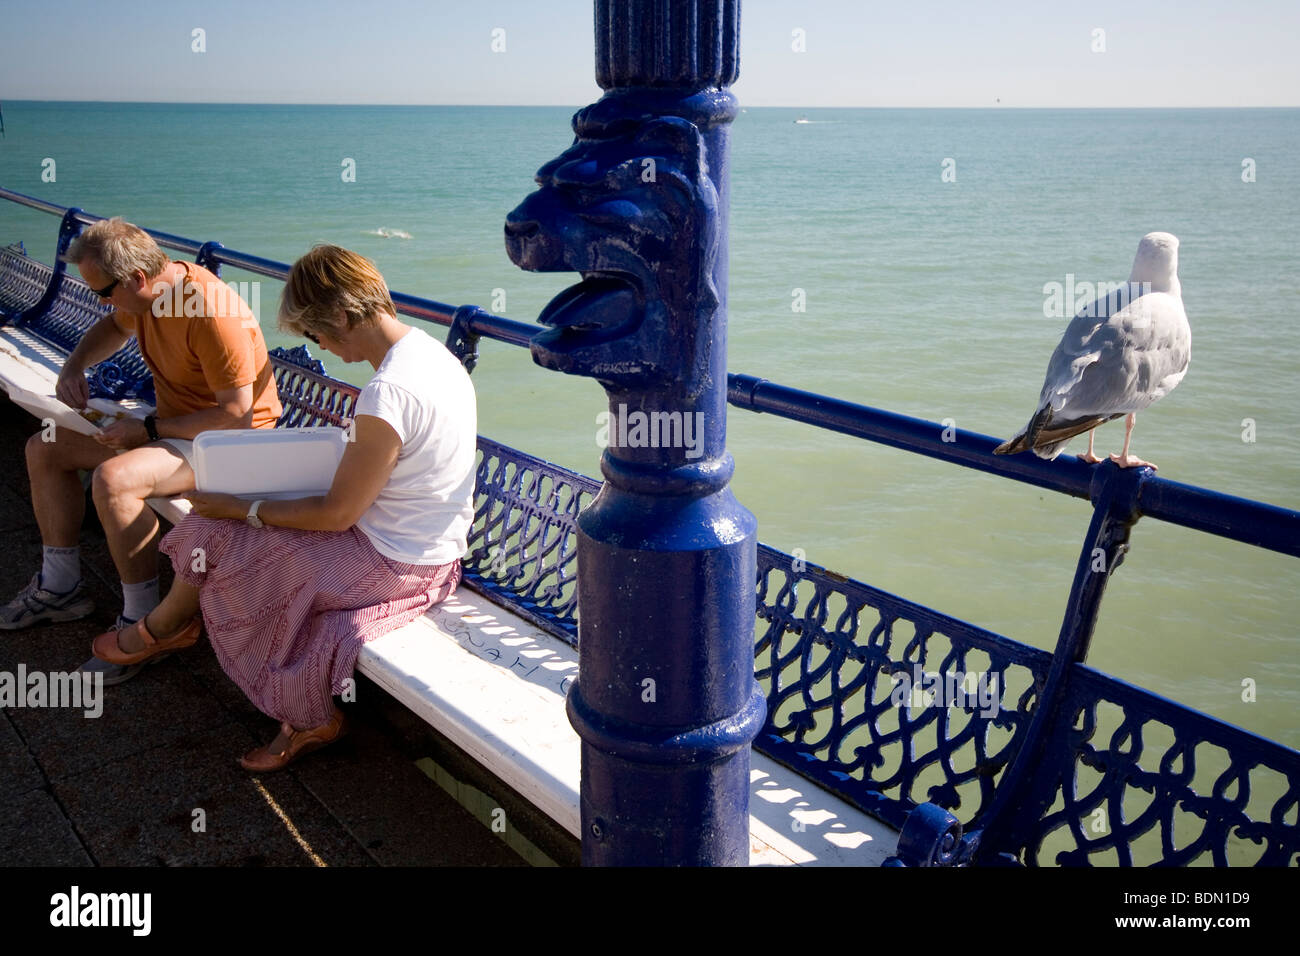 A gull waits for scraps while a couple eat their food on the pier at Eastbourne, England. - Stock Image